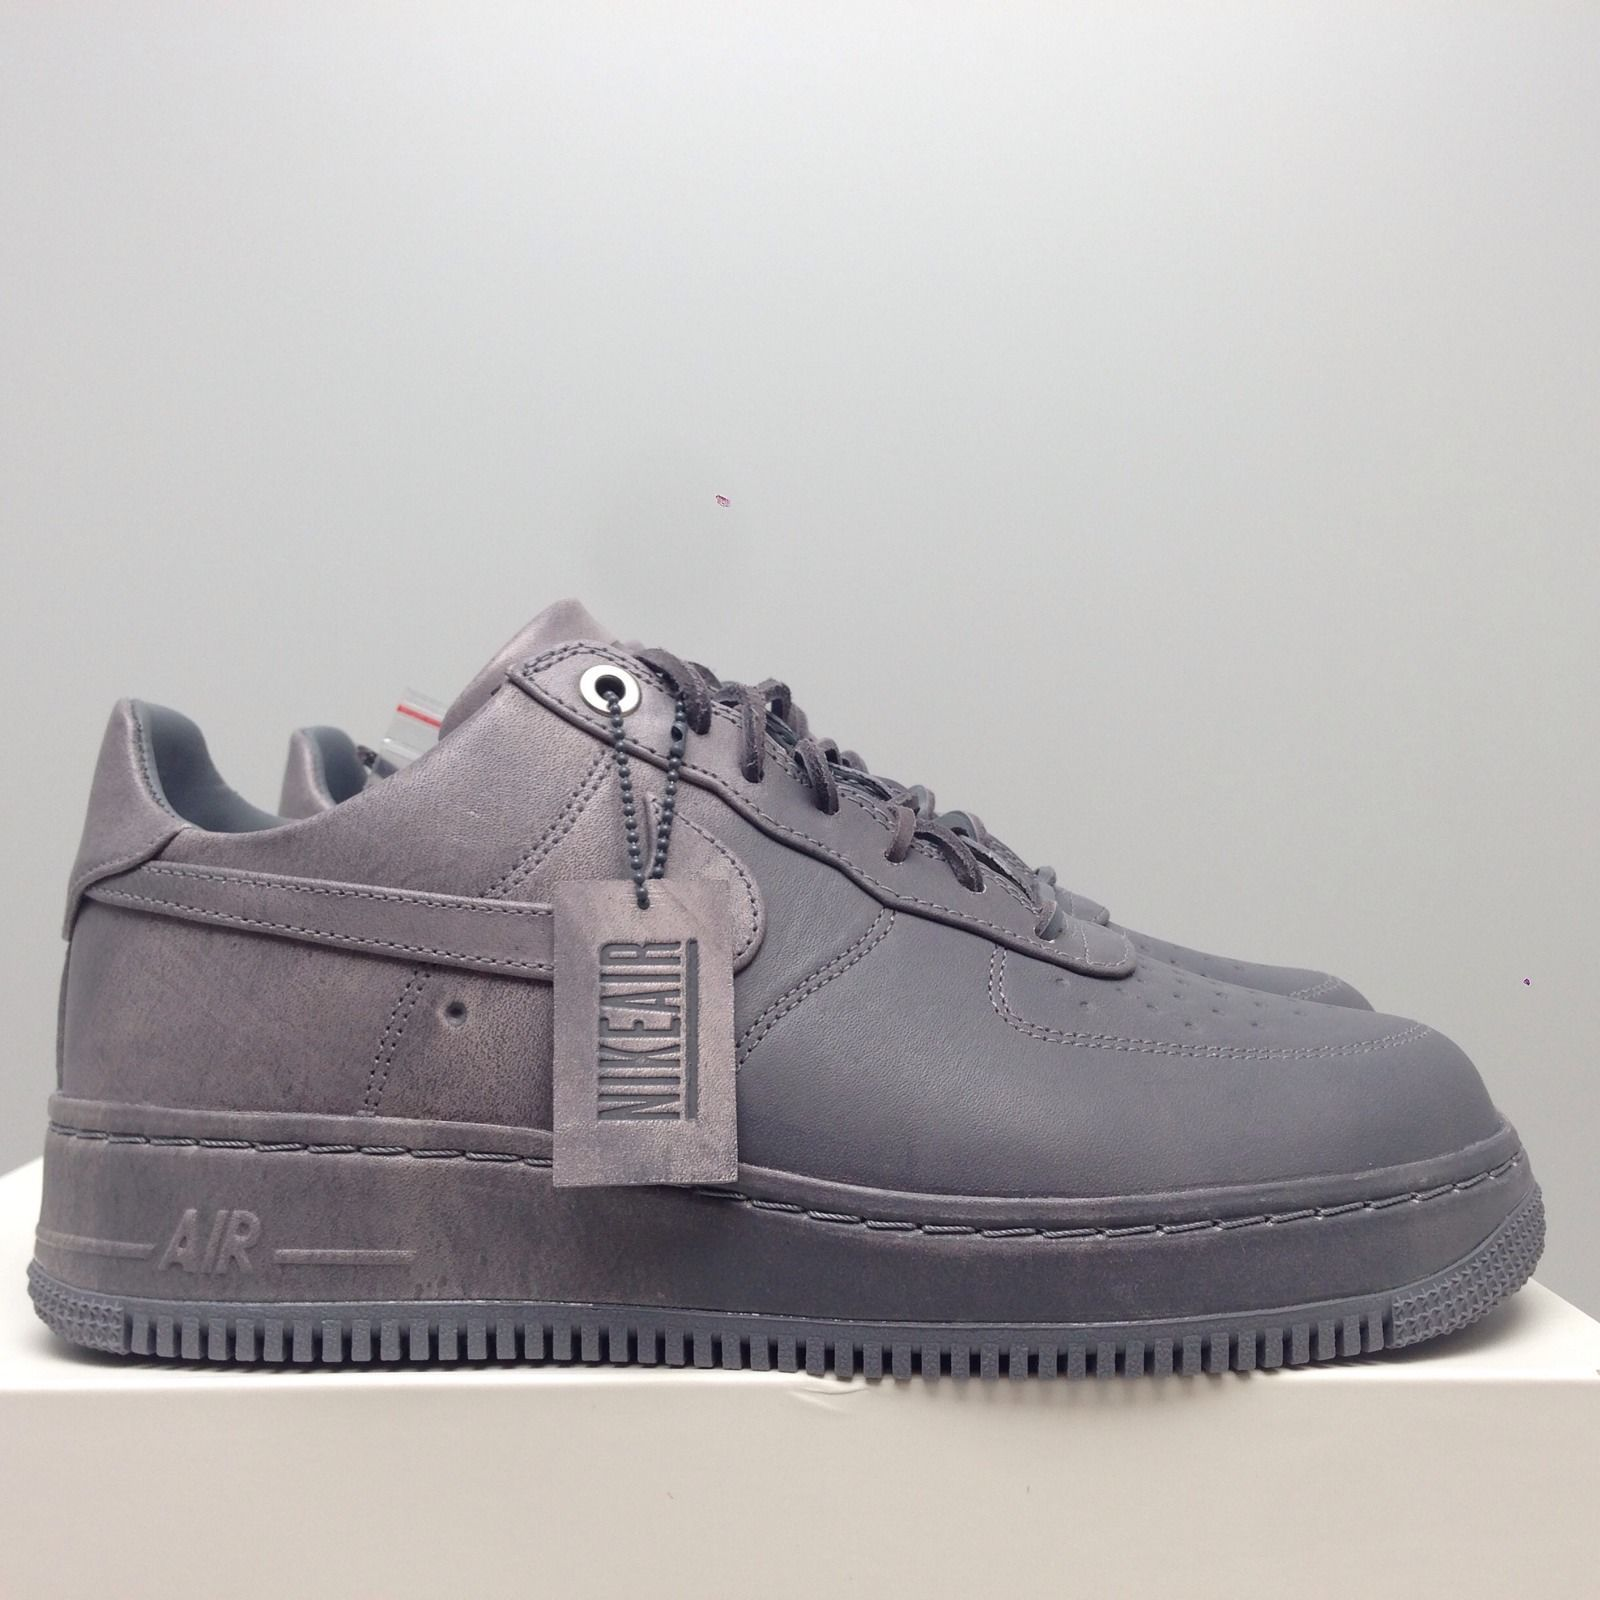 wholesale dealer aa762 e5d00 Nike Air Force 1 AF1 Pigalle Grey Low RT Tisci Supreme US 7 5 Fits Like 8  SP TZ   eBay